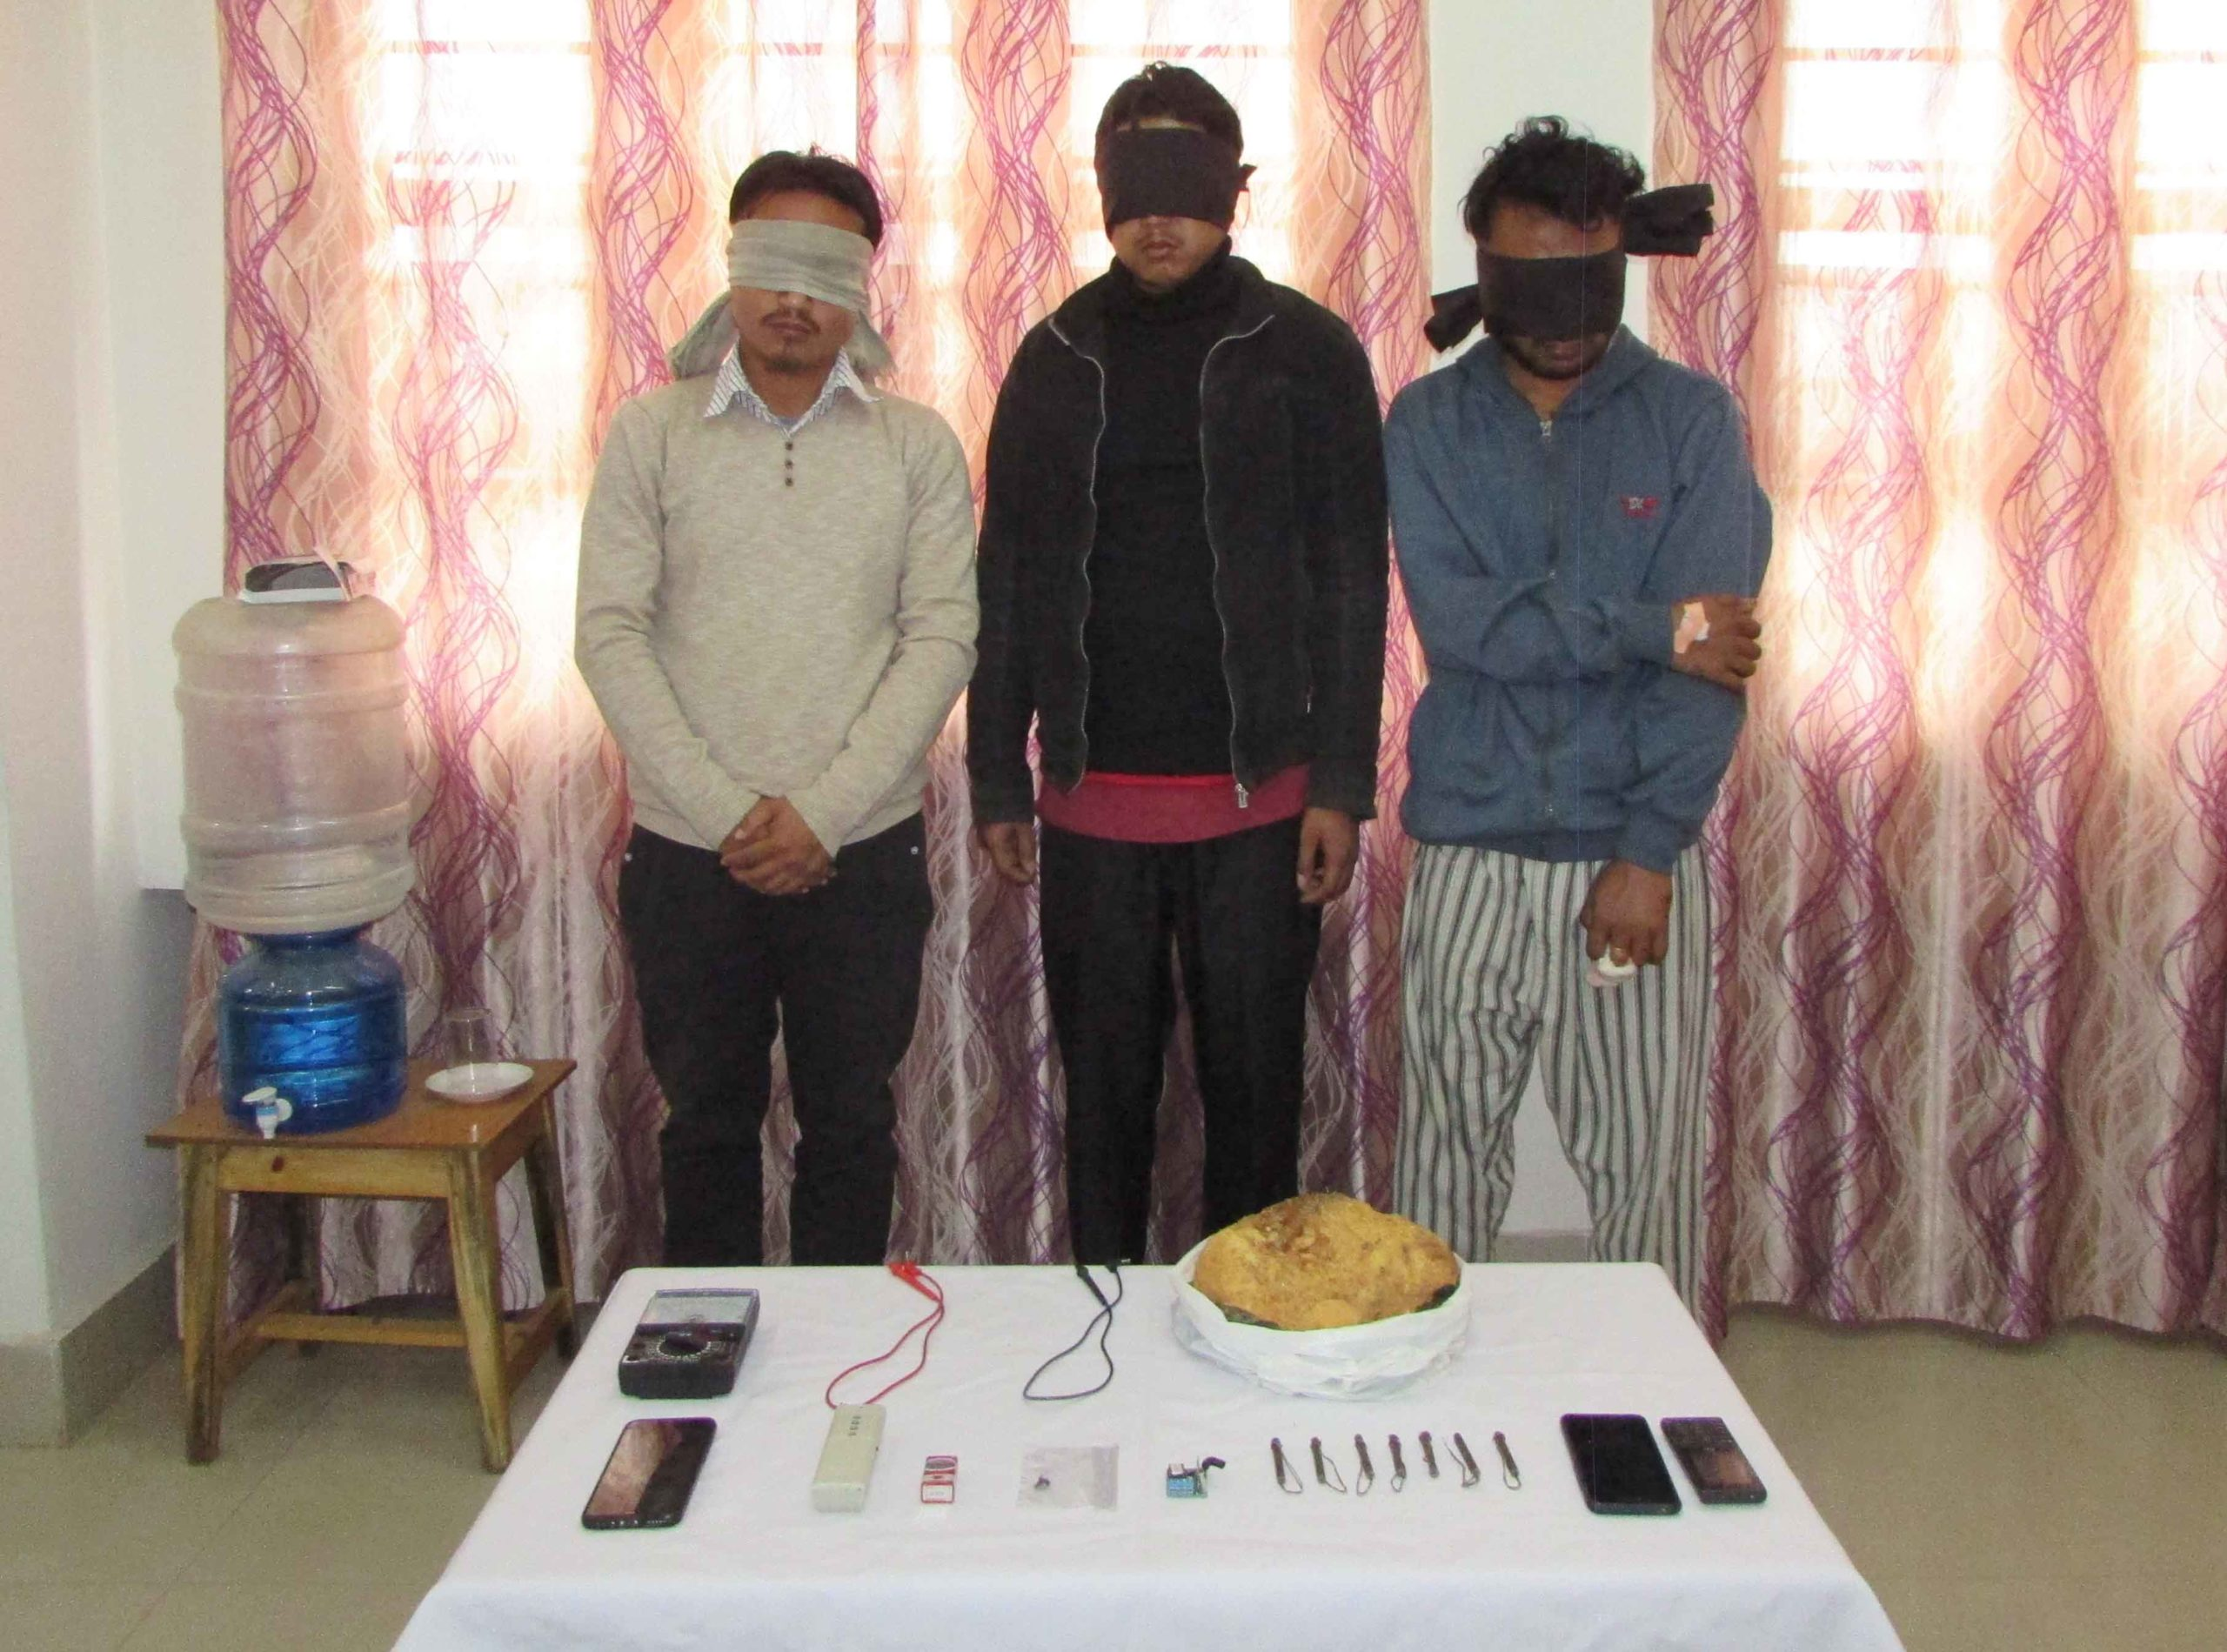 Attack on BSF Post: Police arrest 3 main accused including leader of student org.